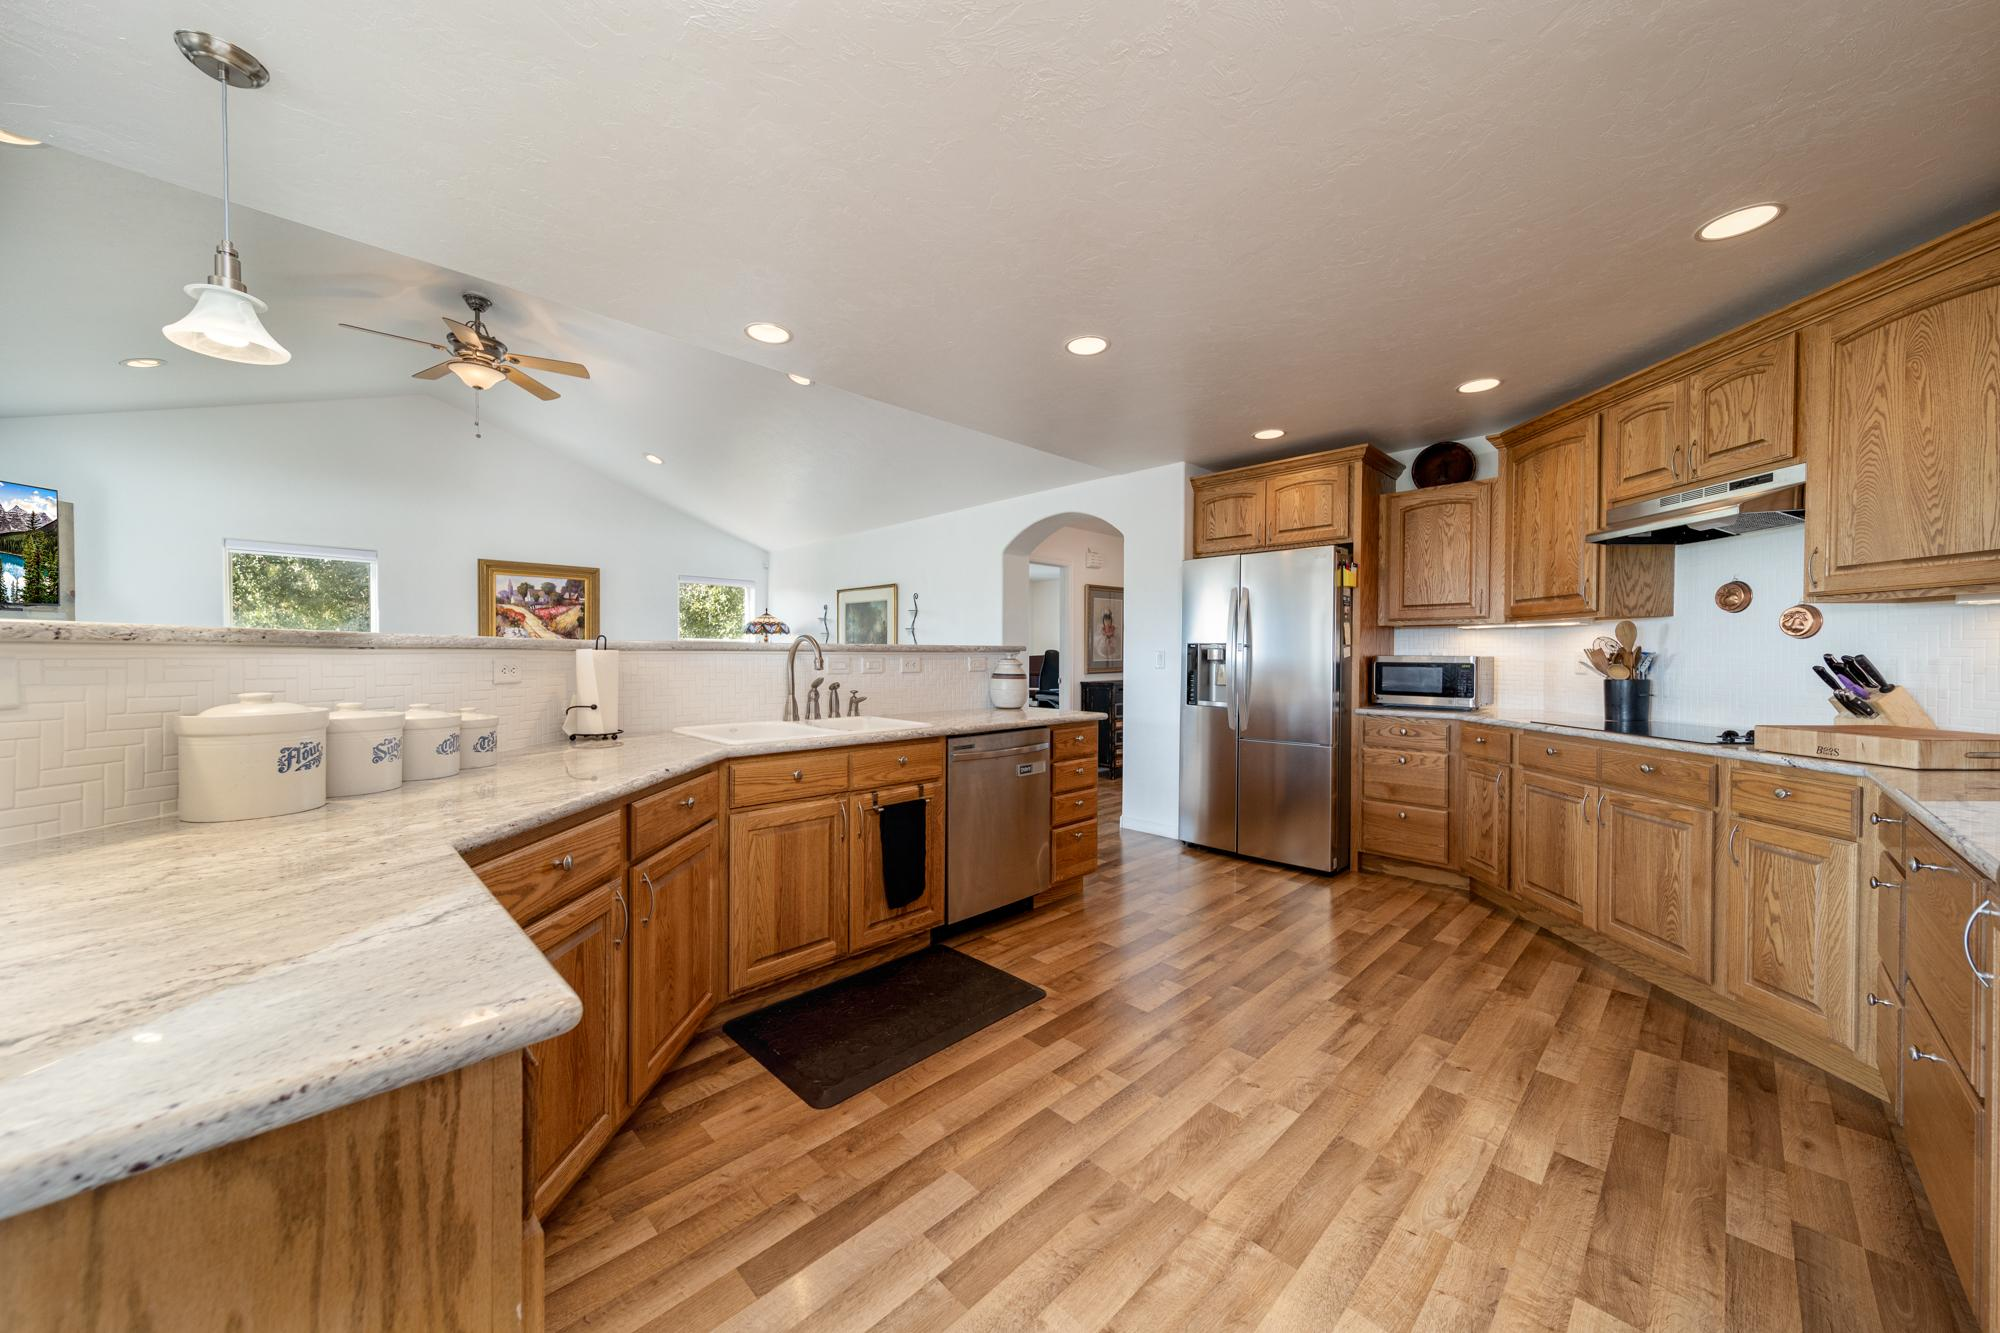 Kitchen with Laminate Flooring - 15552 6120 Rd Montrose, CO 81403 - Atha Team Country Real Estate